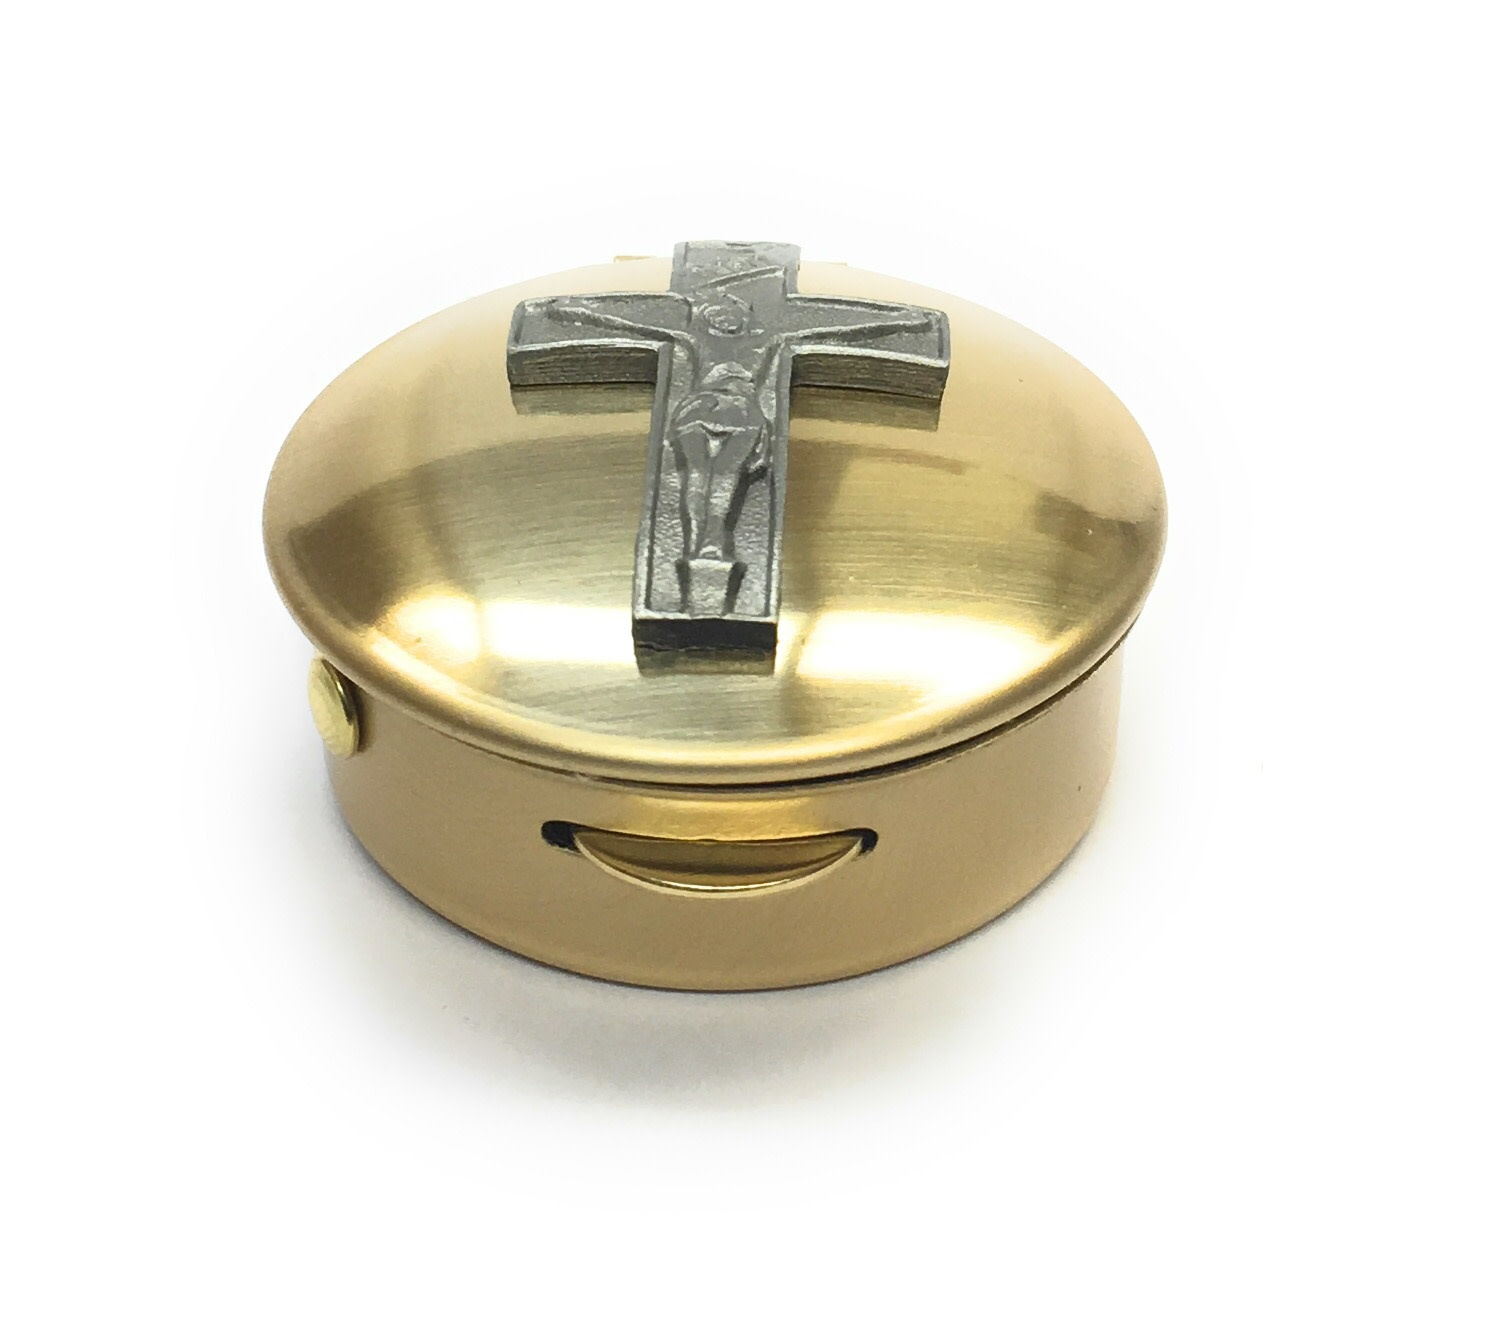 "Simply Catholic Brass Crucifix Pyx (Size 1, 6-9 Hosts, 1/2"" x 1 1/2"")"